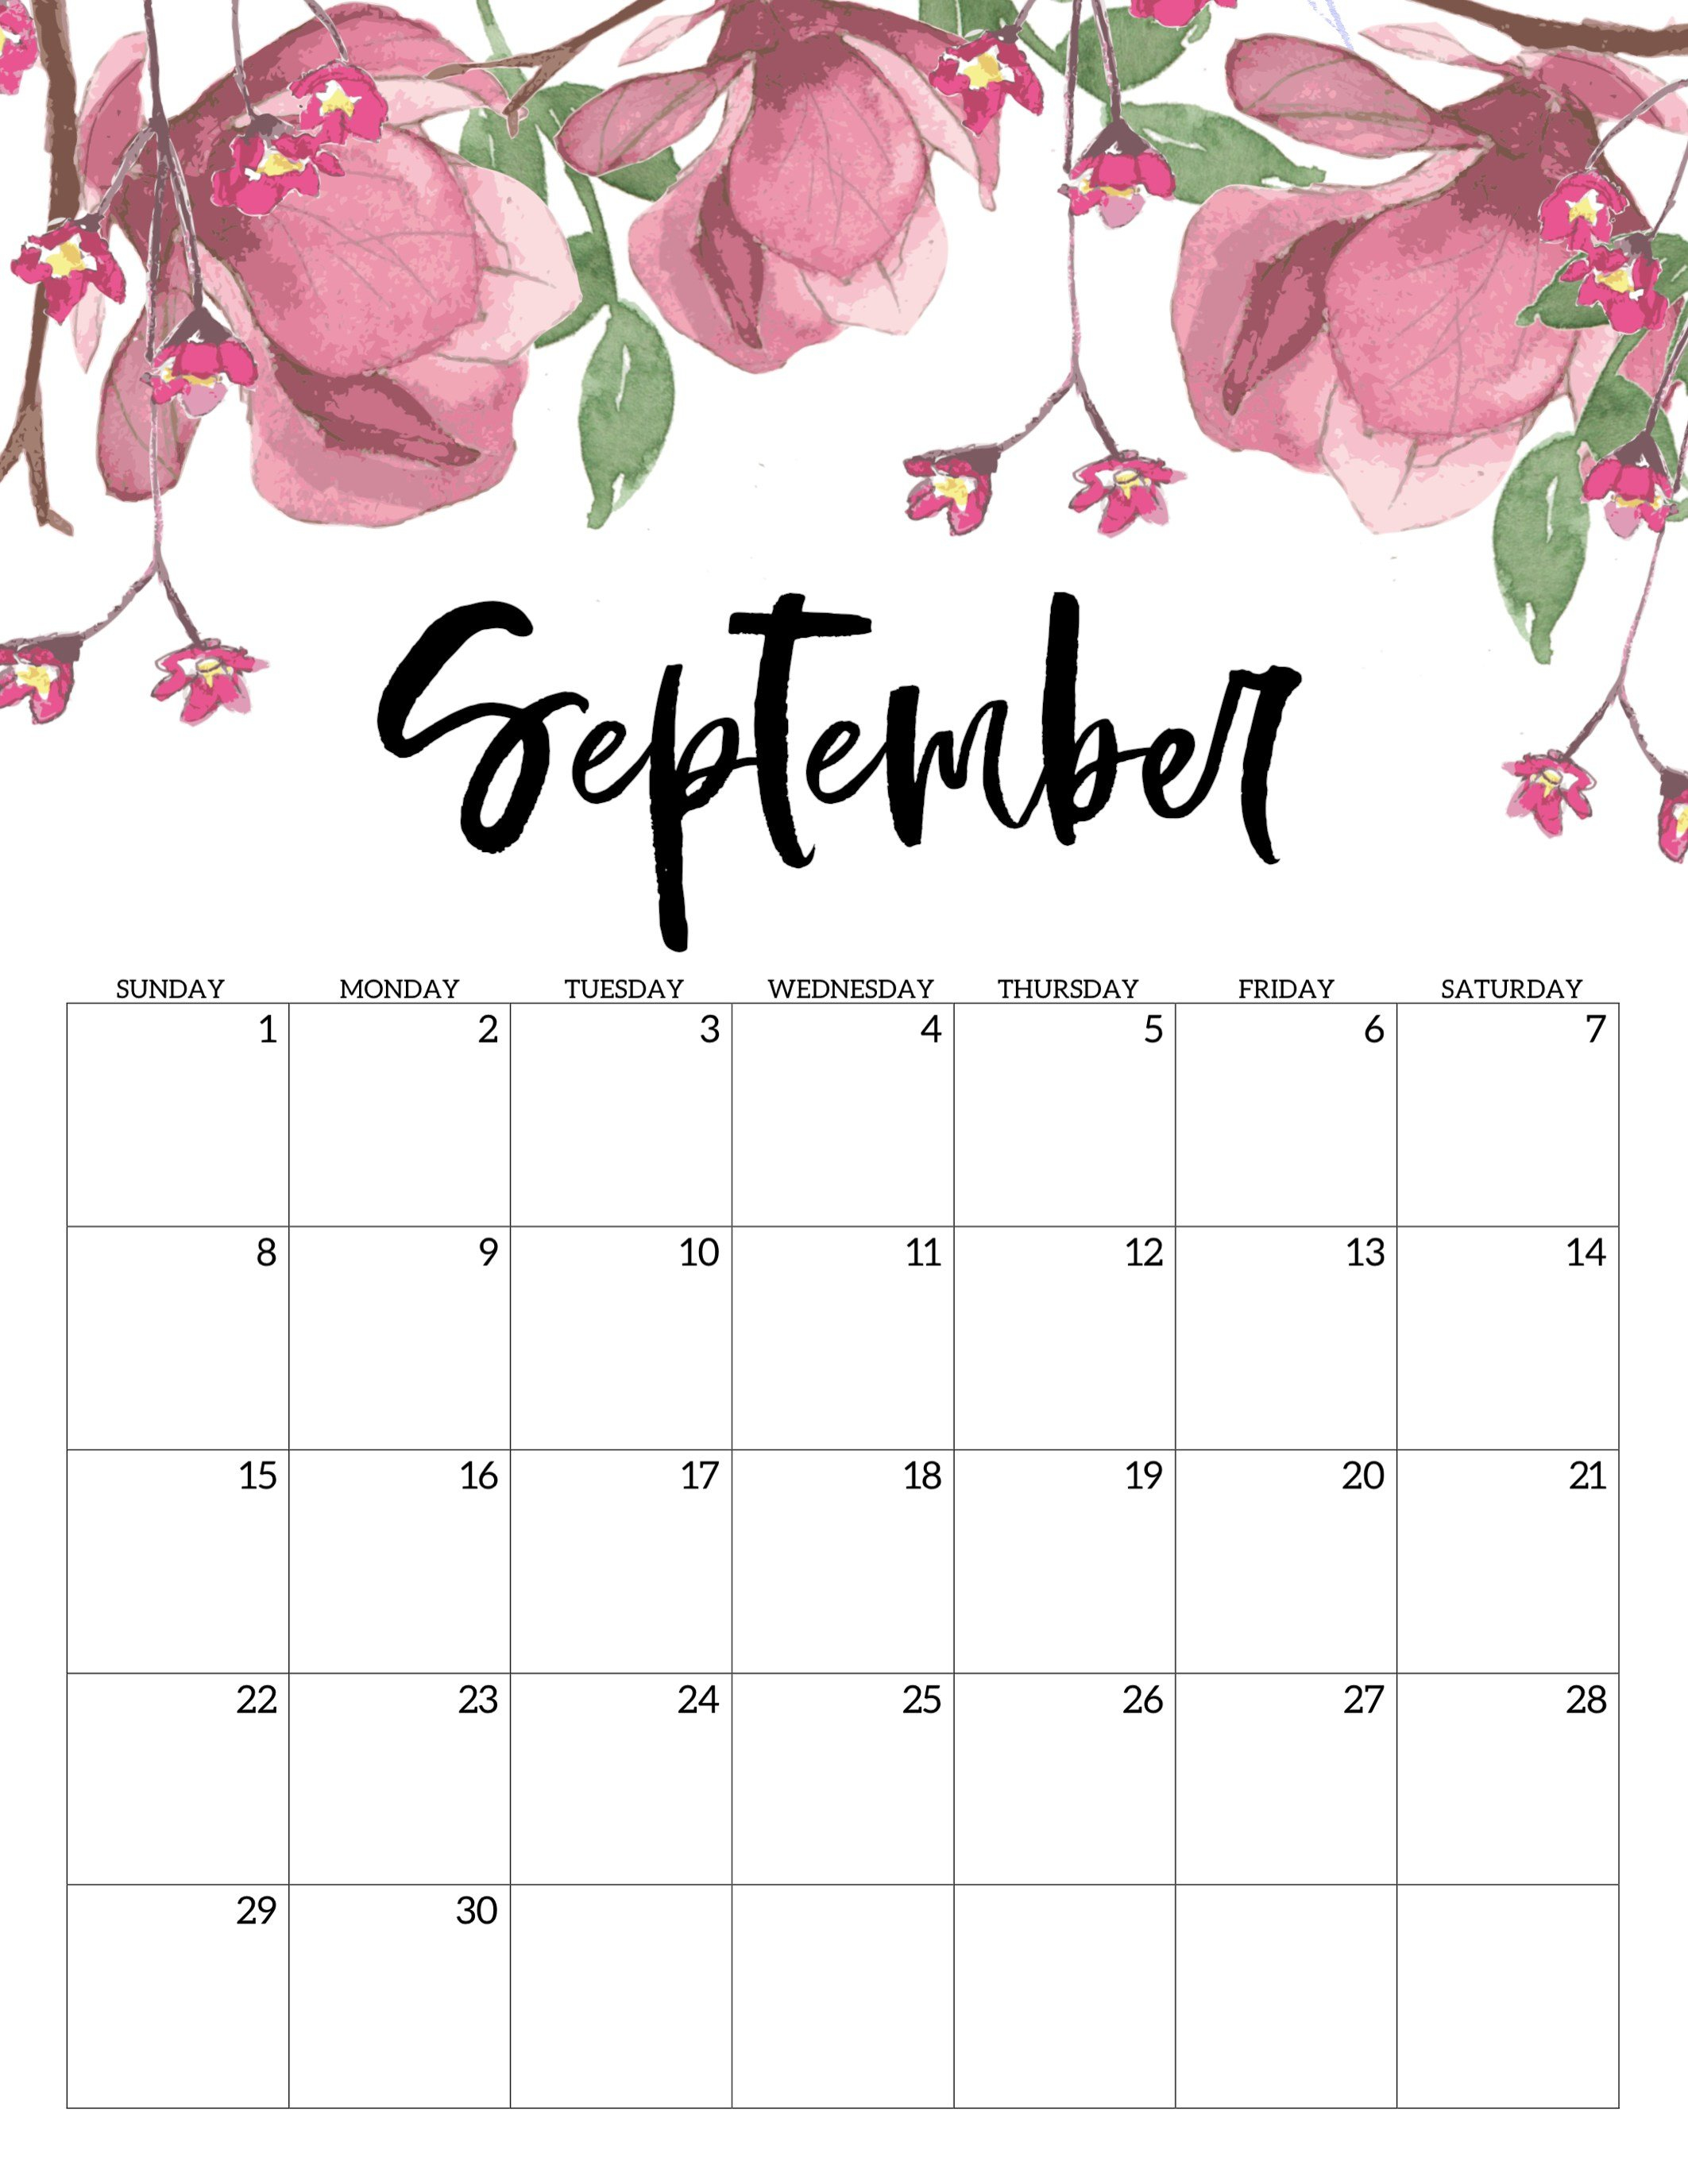 Free Printable Calendar 2019 - Floral - Paper Trail Design Calendar 2019 Girly